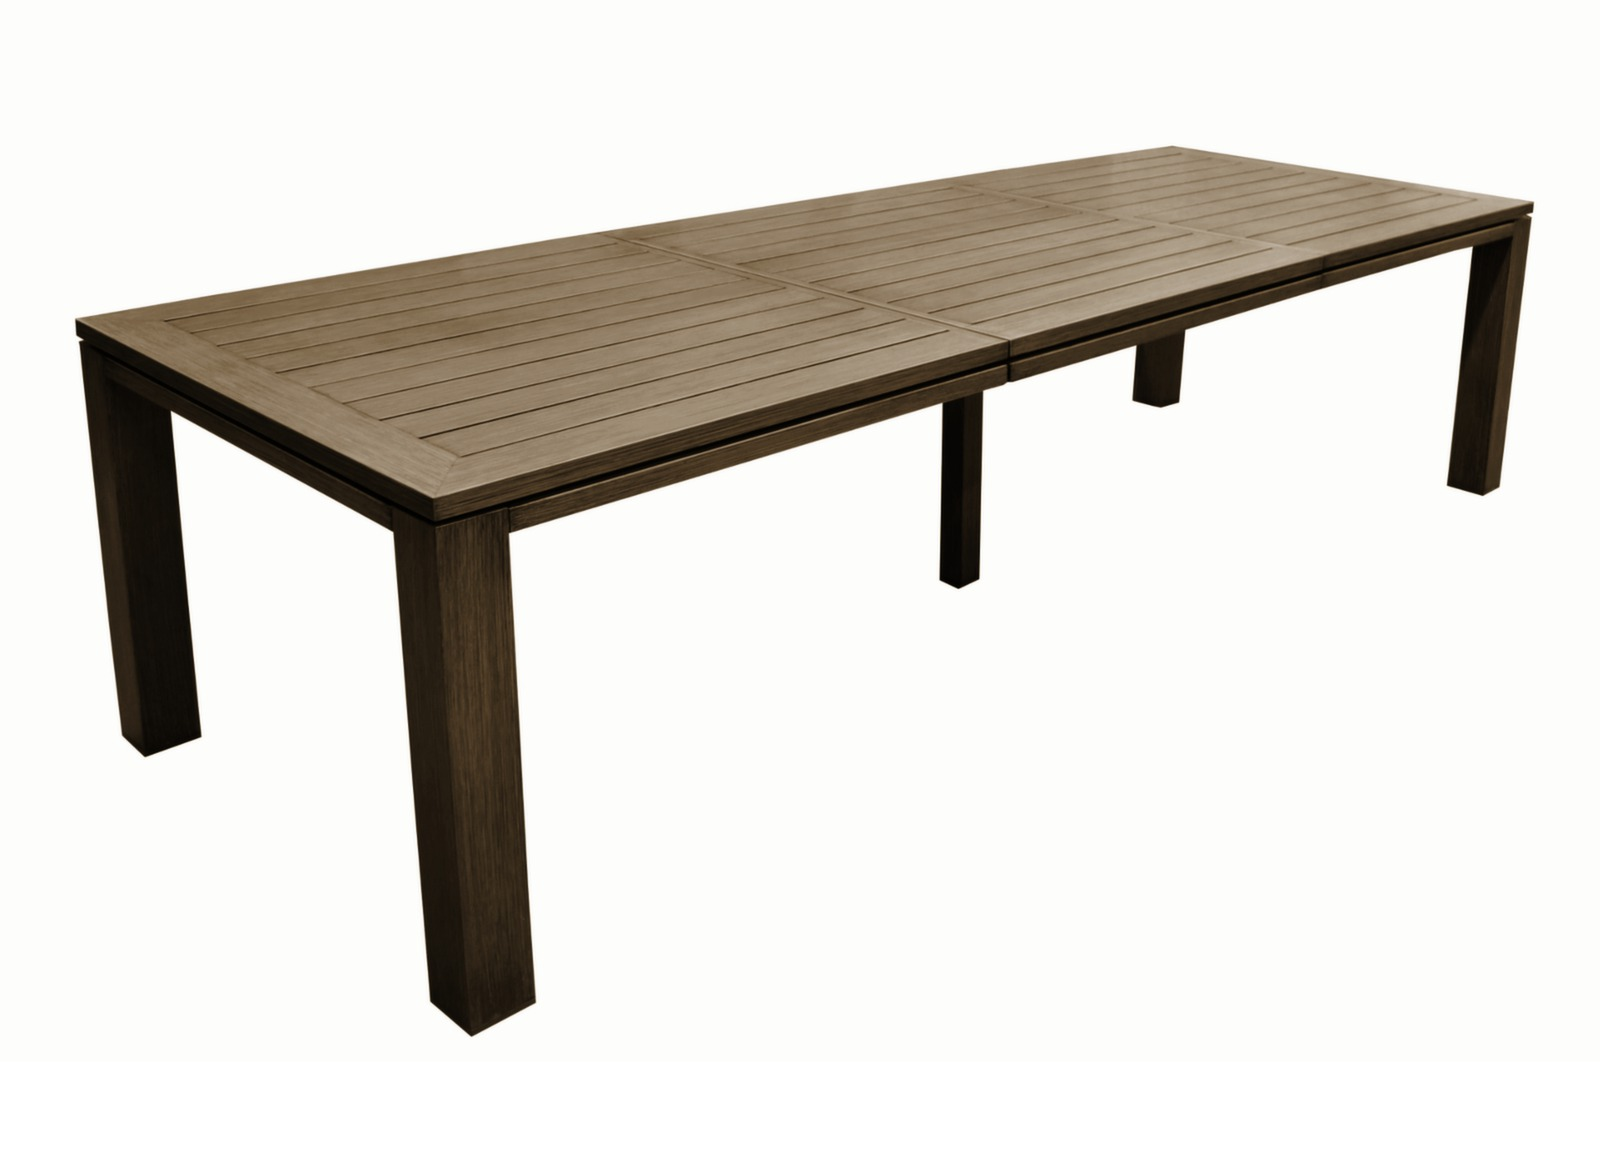 Grande table de jardin rectangle fiero proloisirs - Castorama table de jardin ...